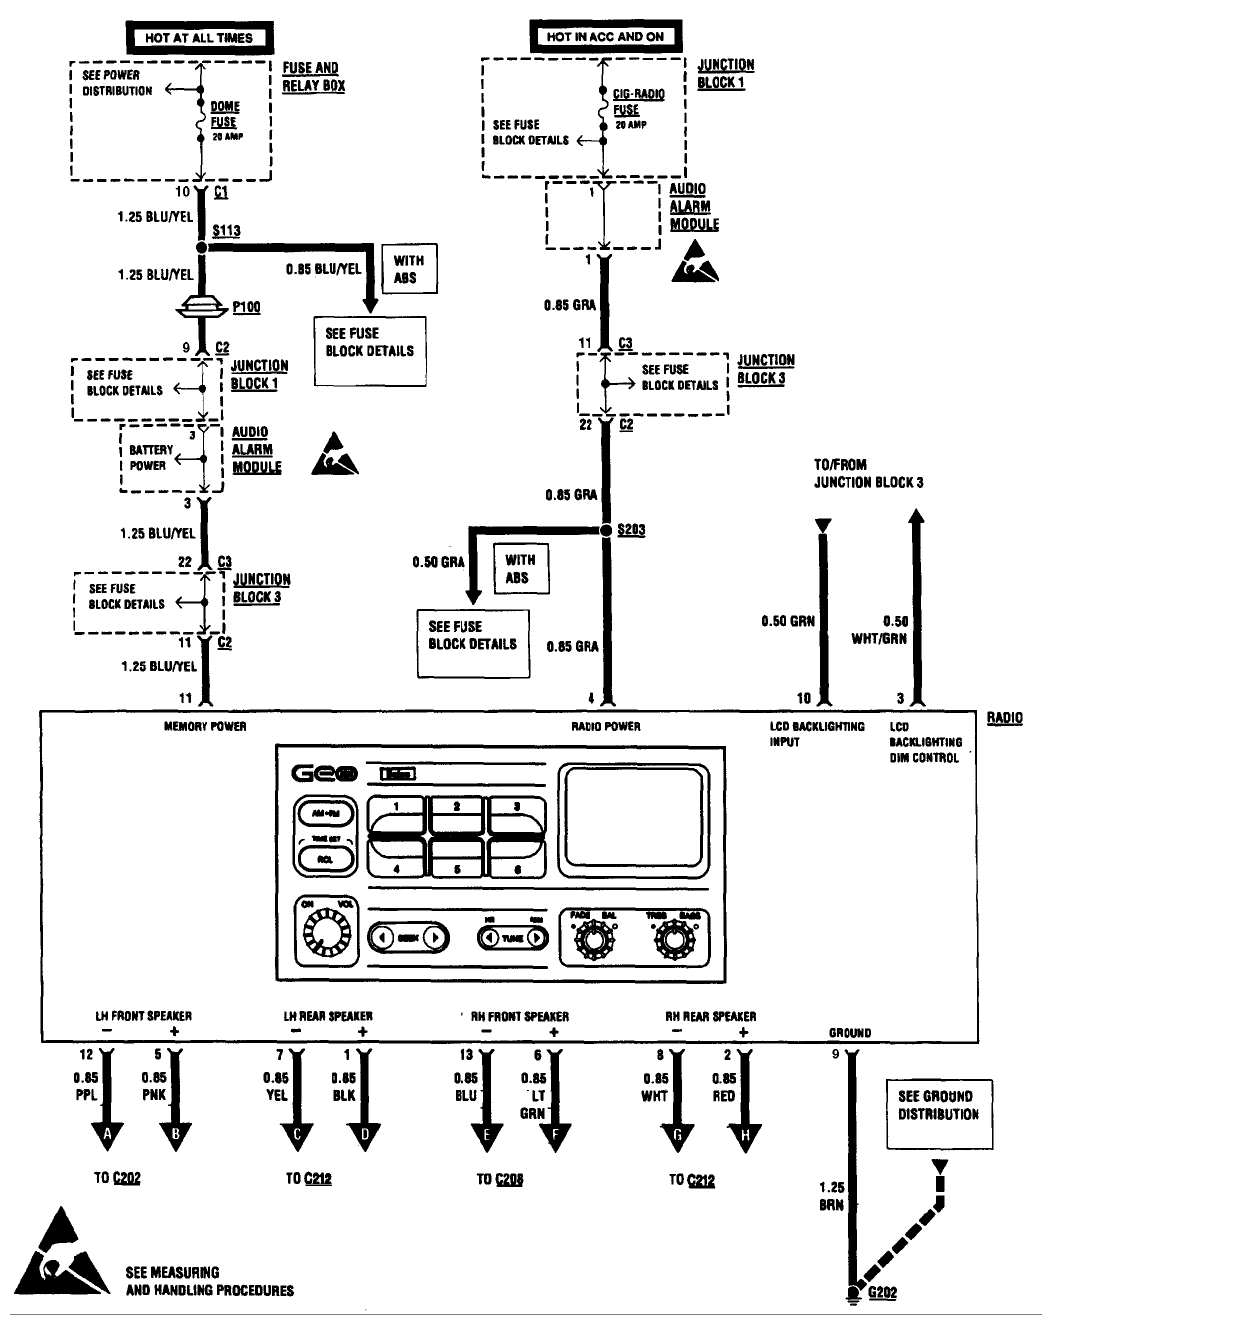 [DIAGRAM] Mazda 626 2001 Headlight Wires Colors Diagram